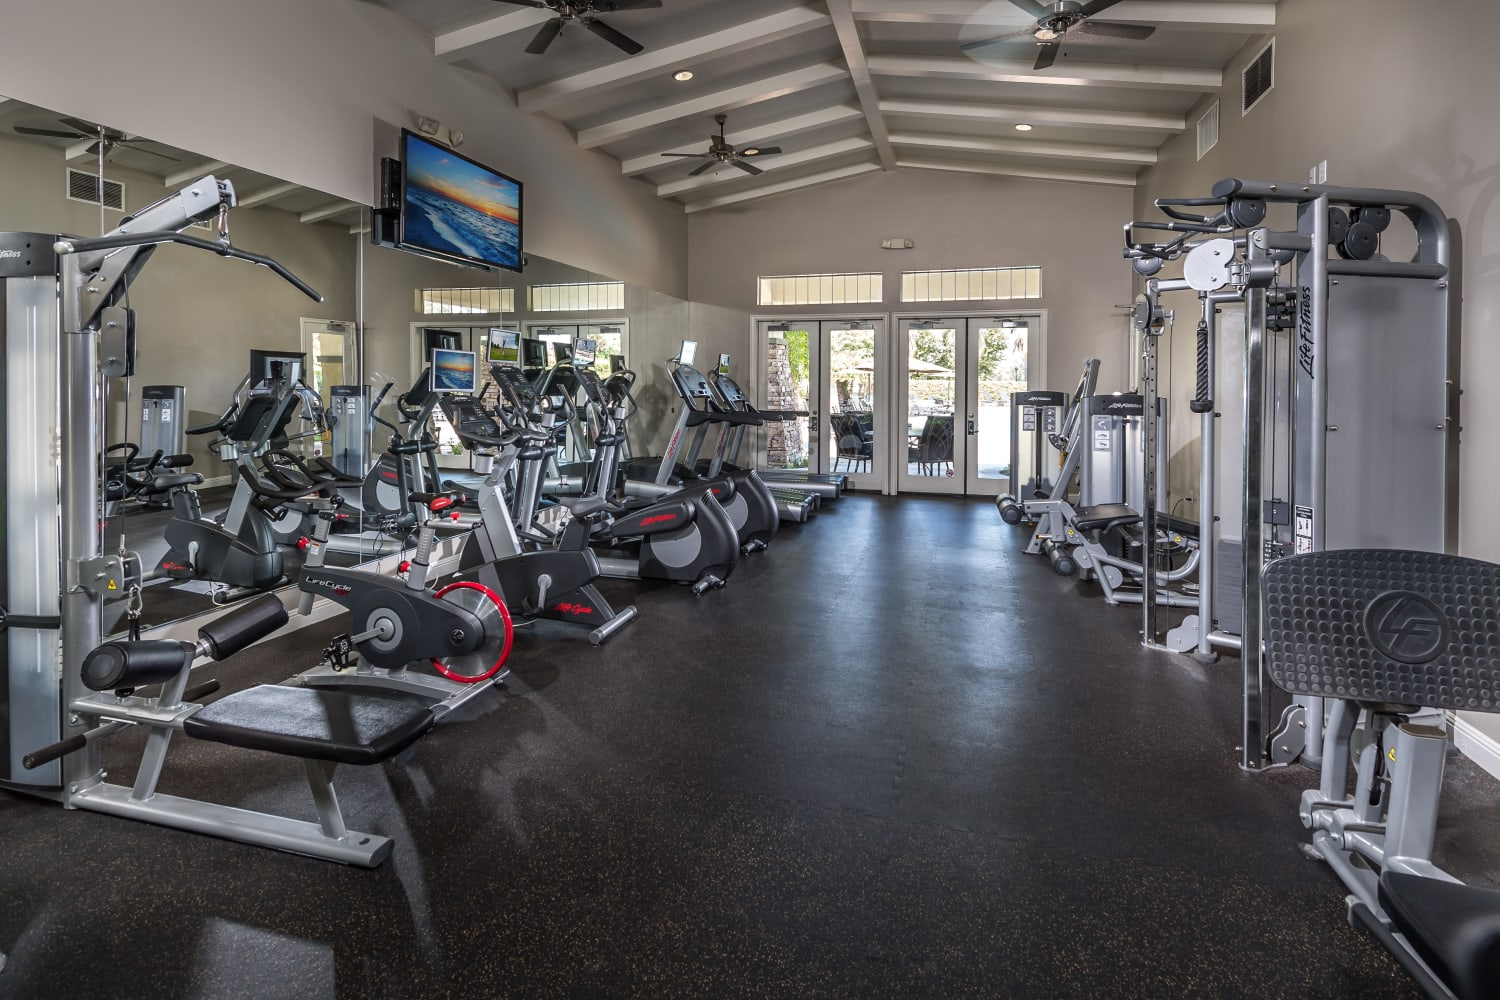 Camino Real offers a fully-equipped fitness center in Rancho Cucamonga, California